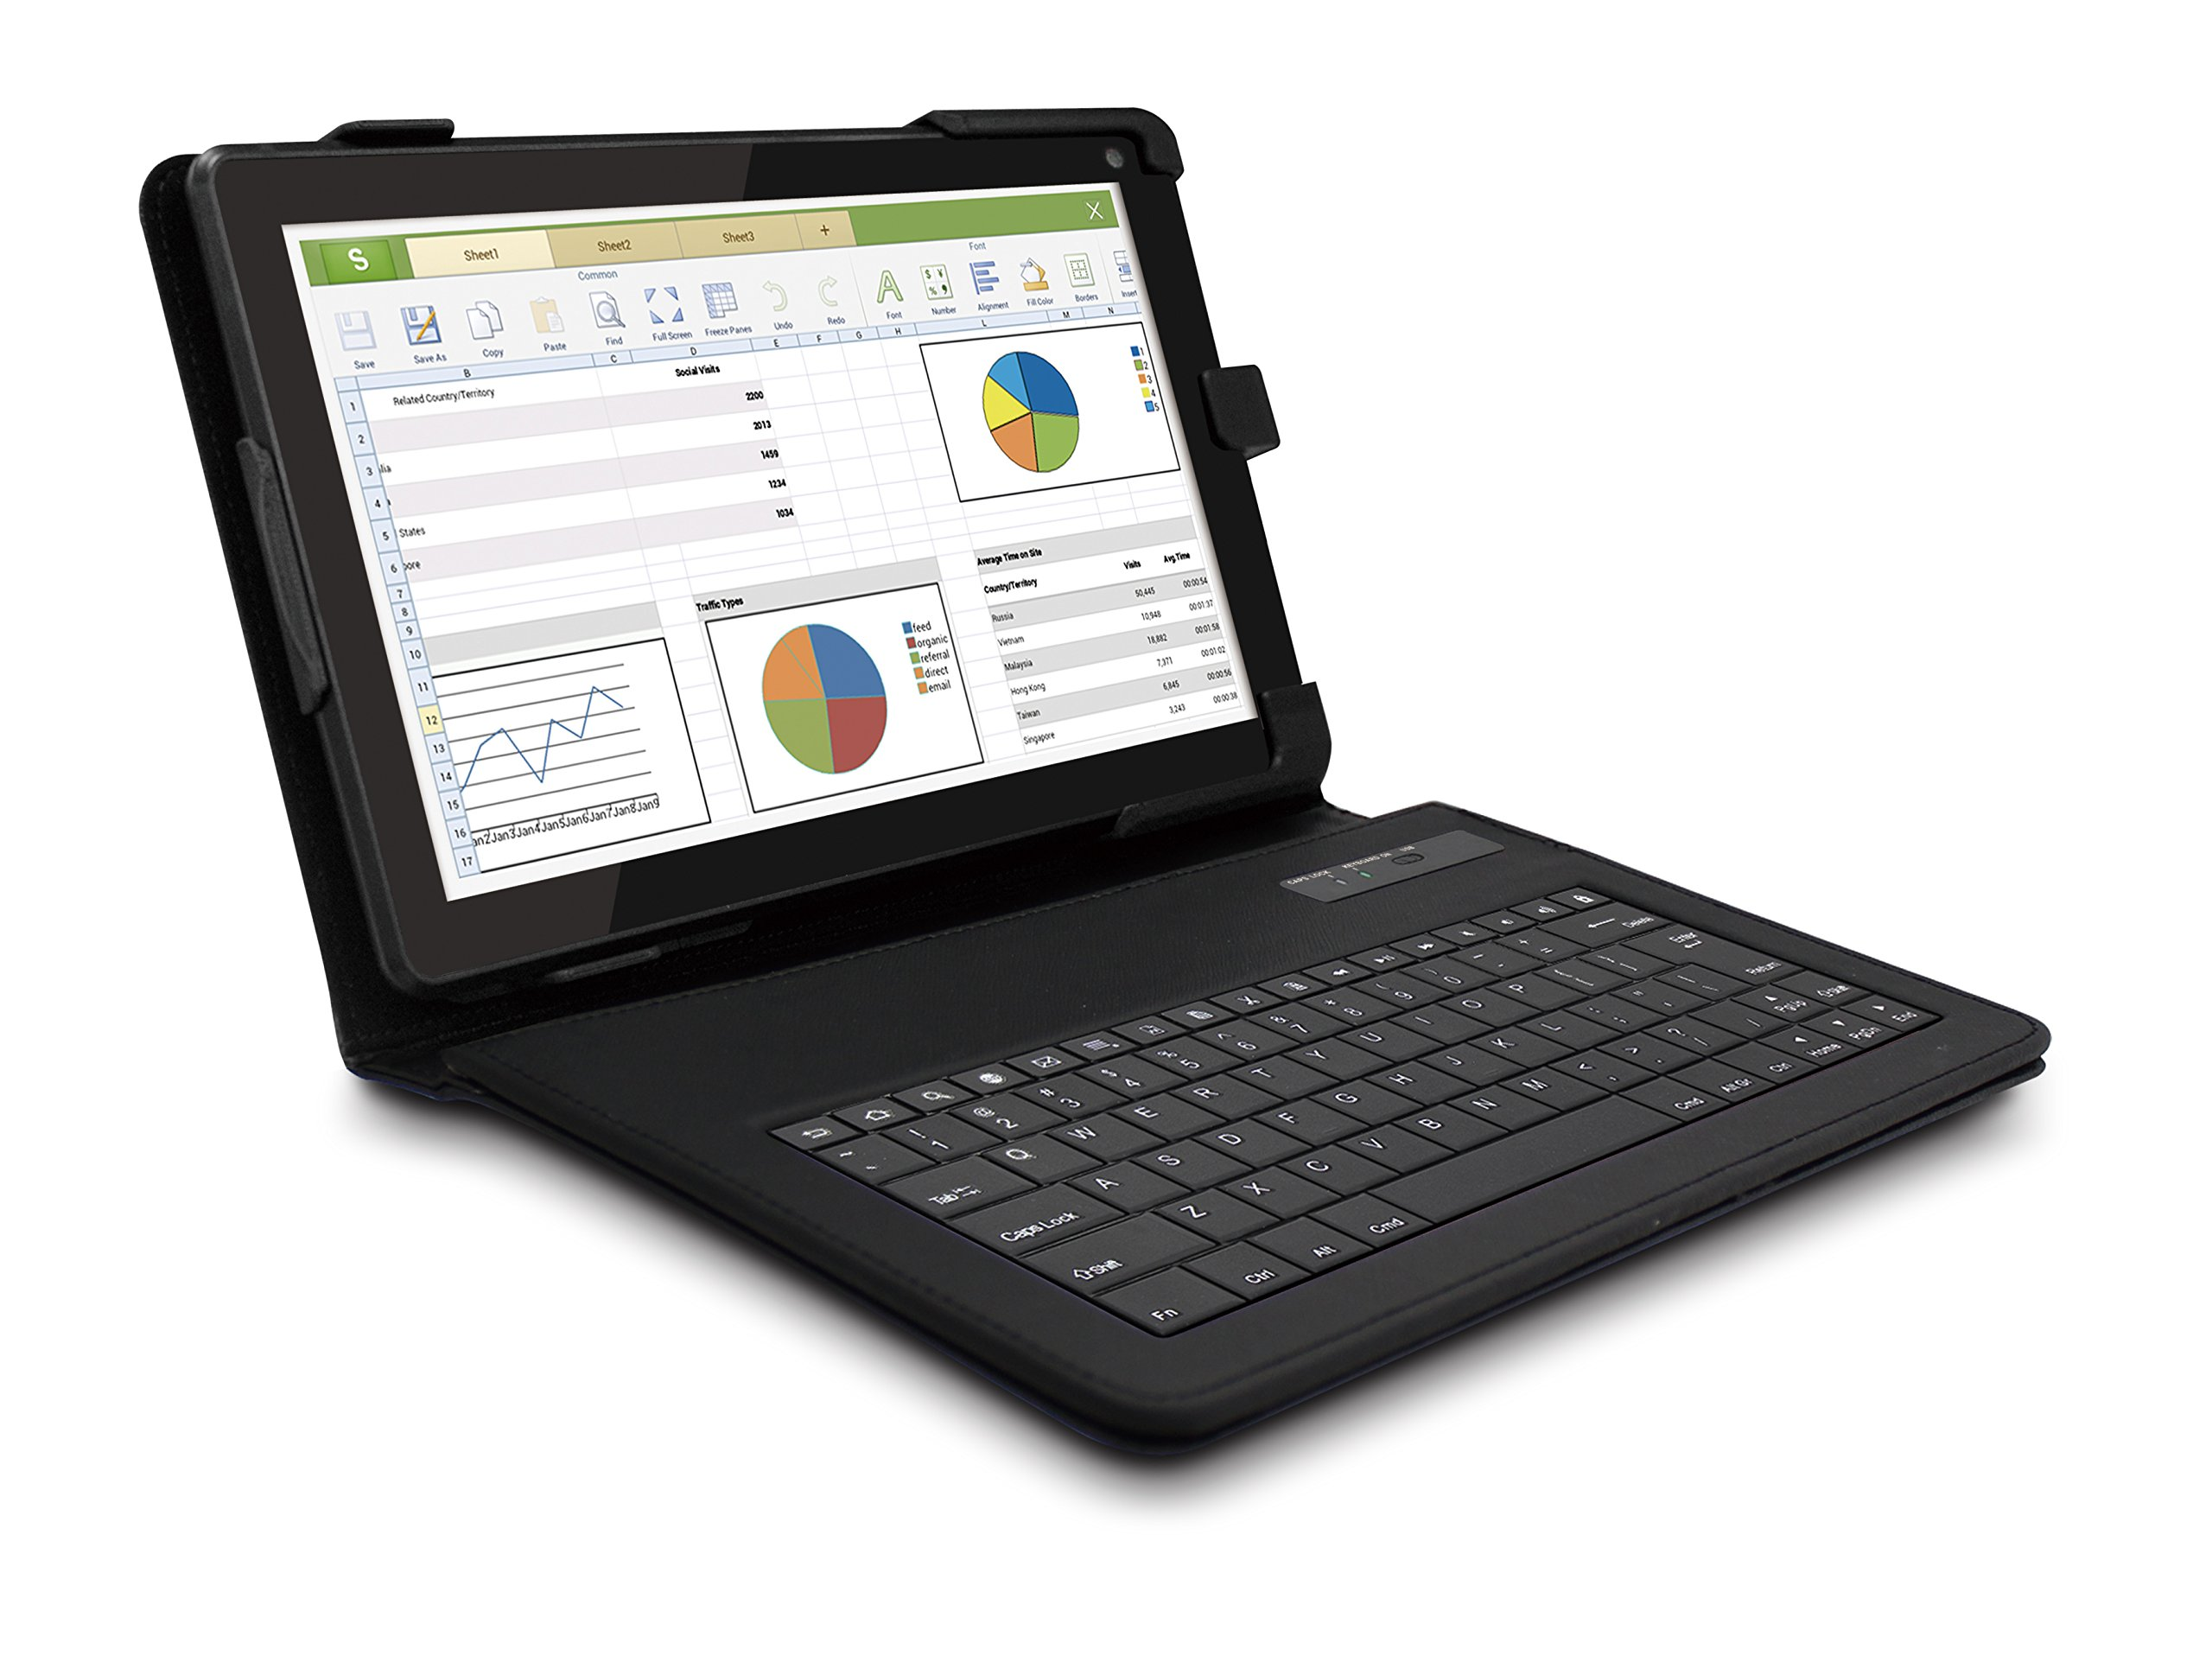 RCA RCT6103W46H 10-inch Quad Core Android Tablet With Keyboard Folio Case